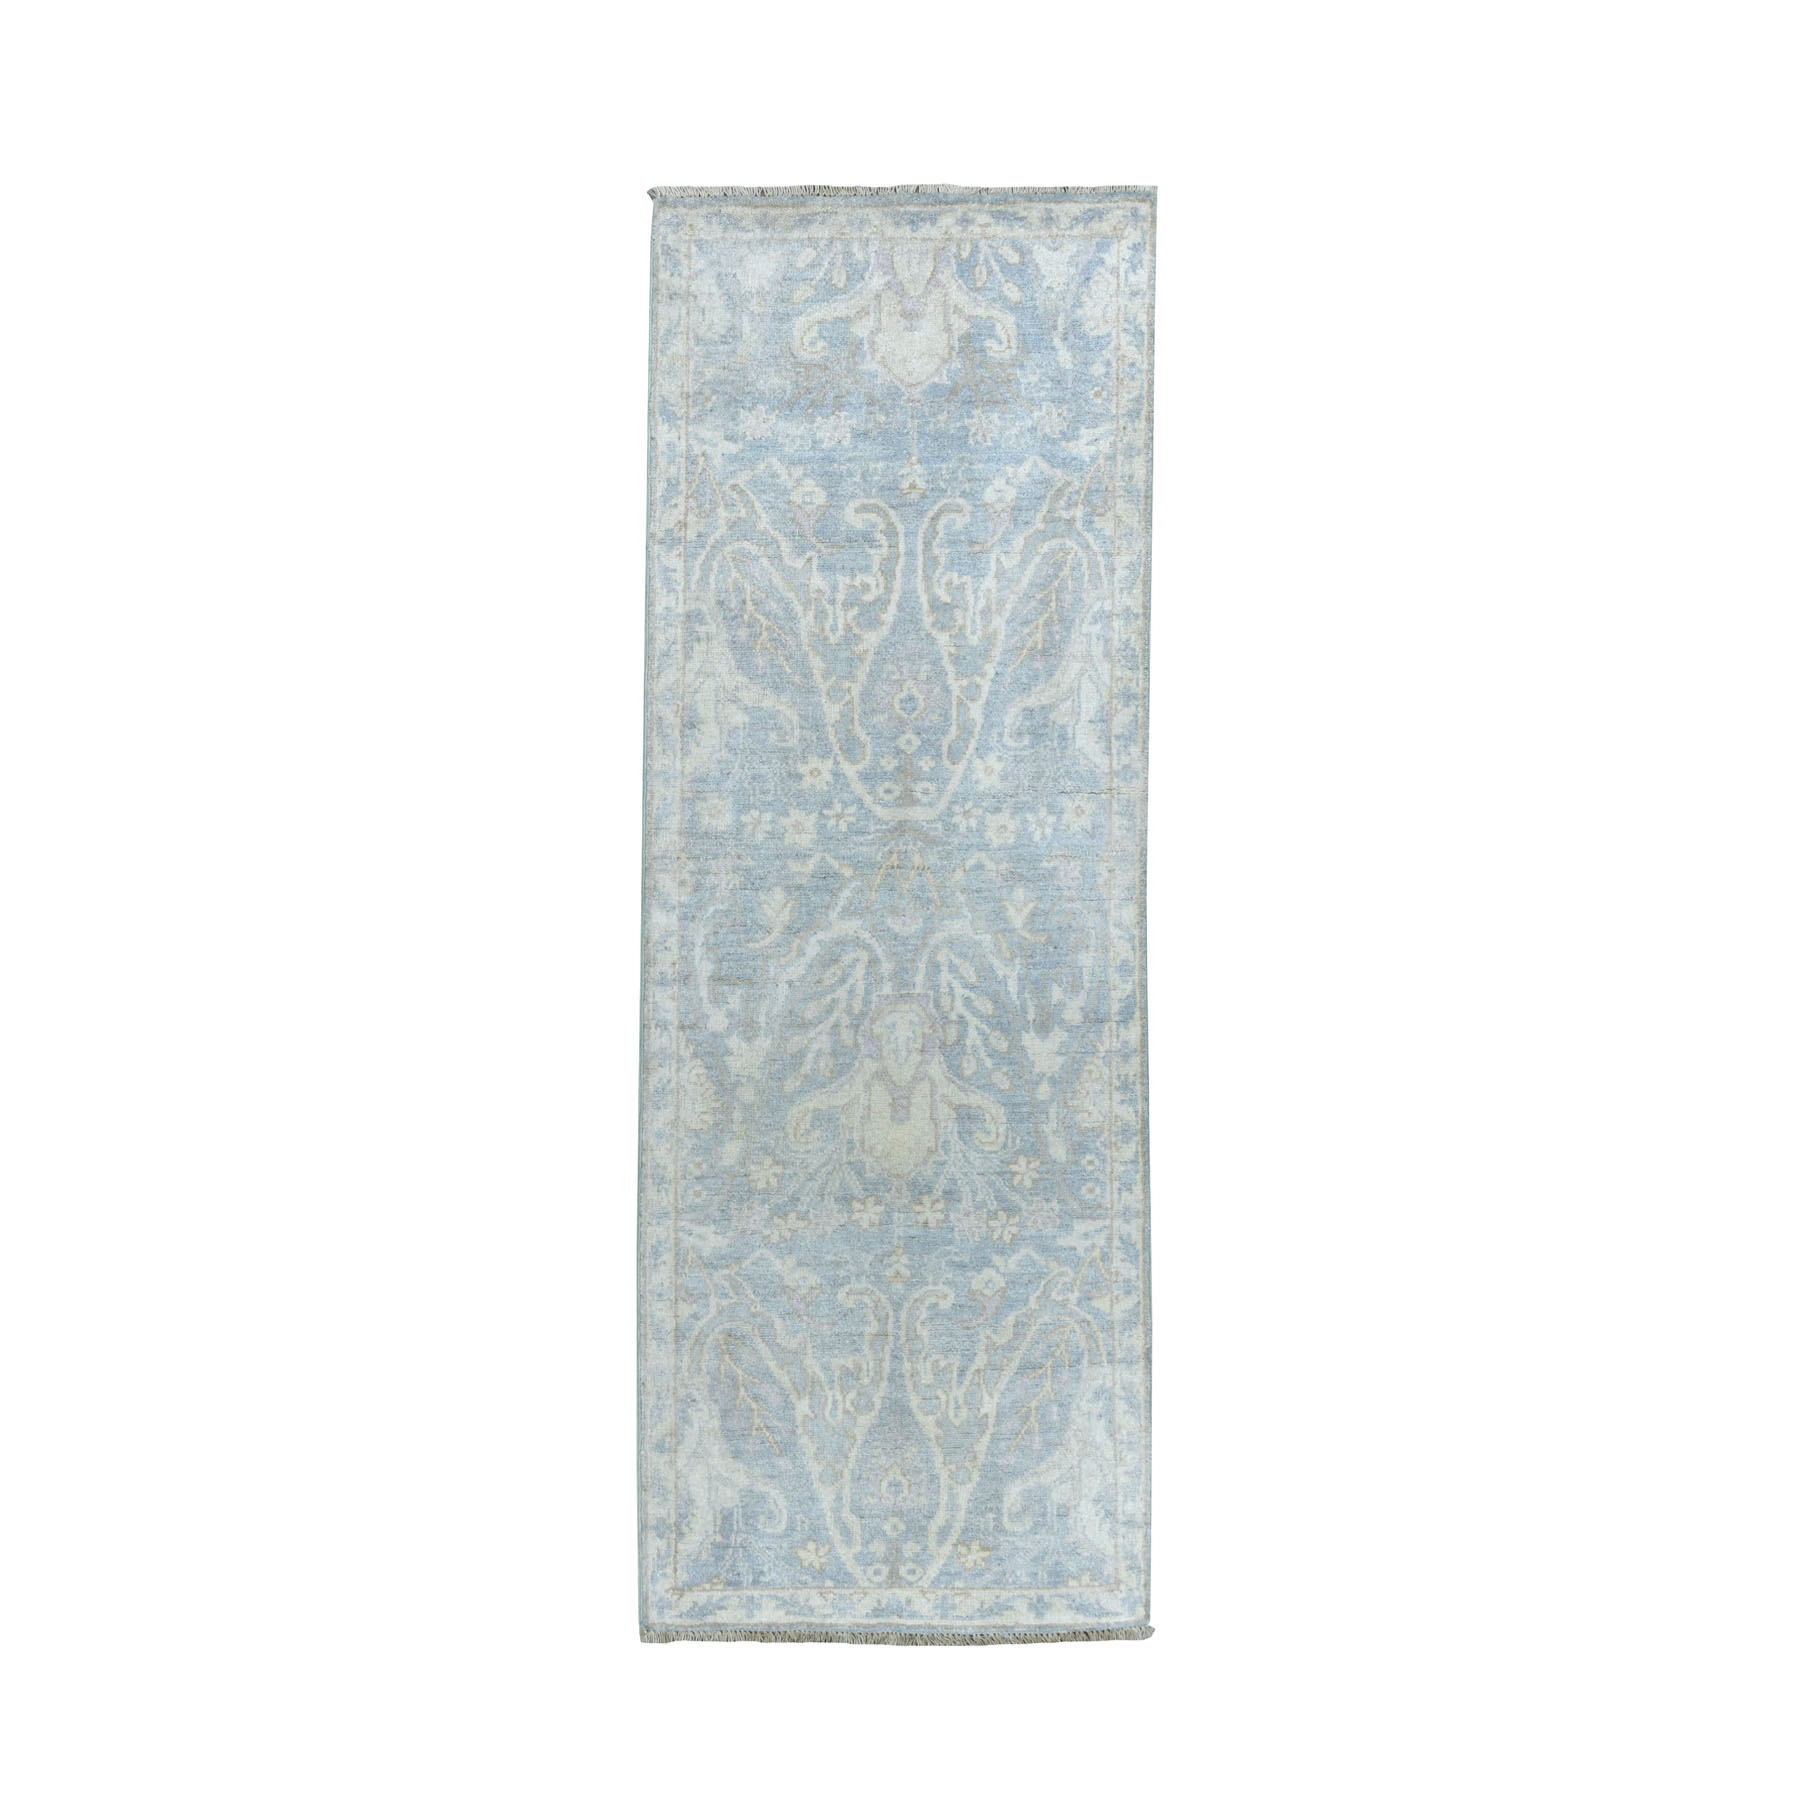 """2'1""""X5'10"""" White Wash Peshawar Pure Wool Hand-Knotted Runner Oriental Rug moaeacdc"""